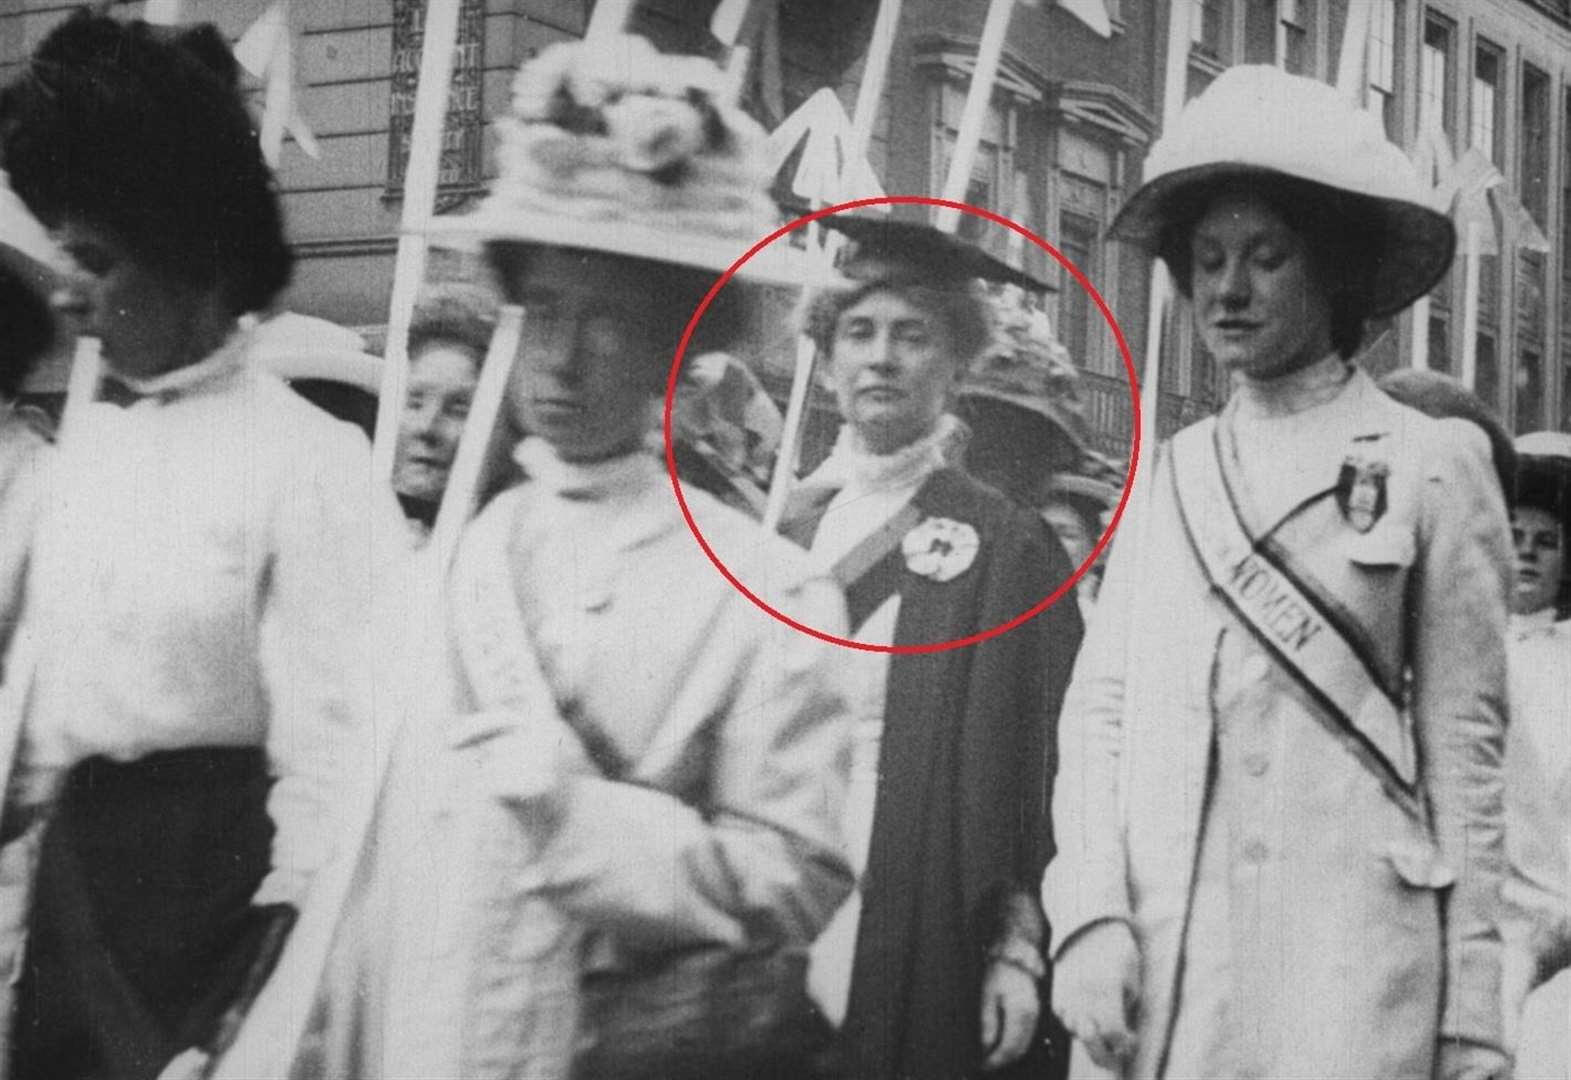 Kent actress spots suffragette killed by horse in rare film